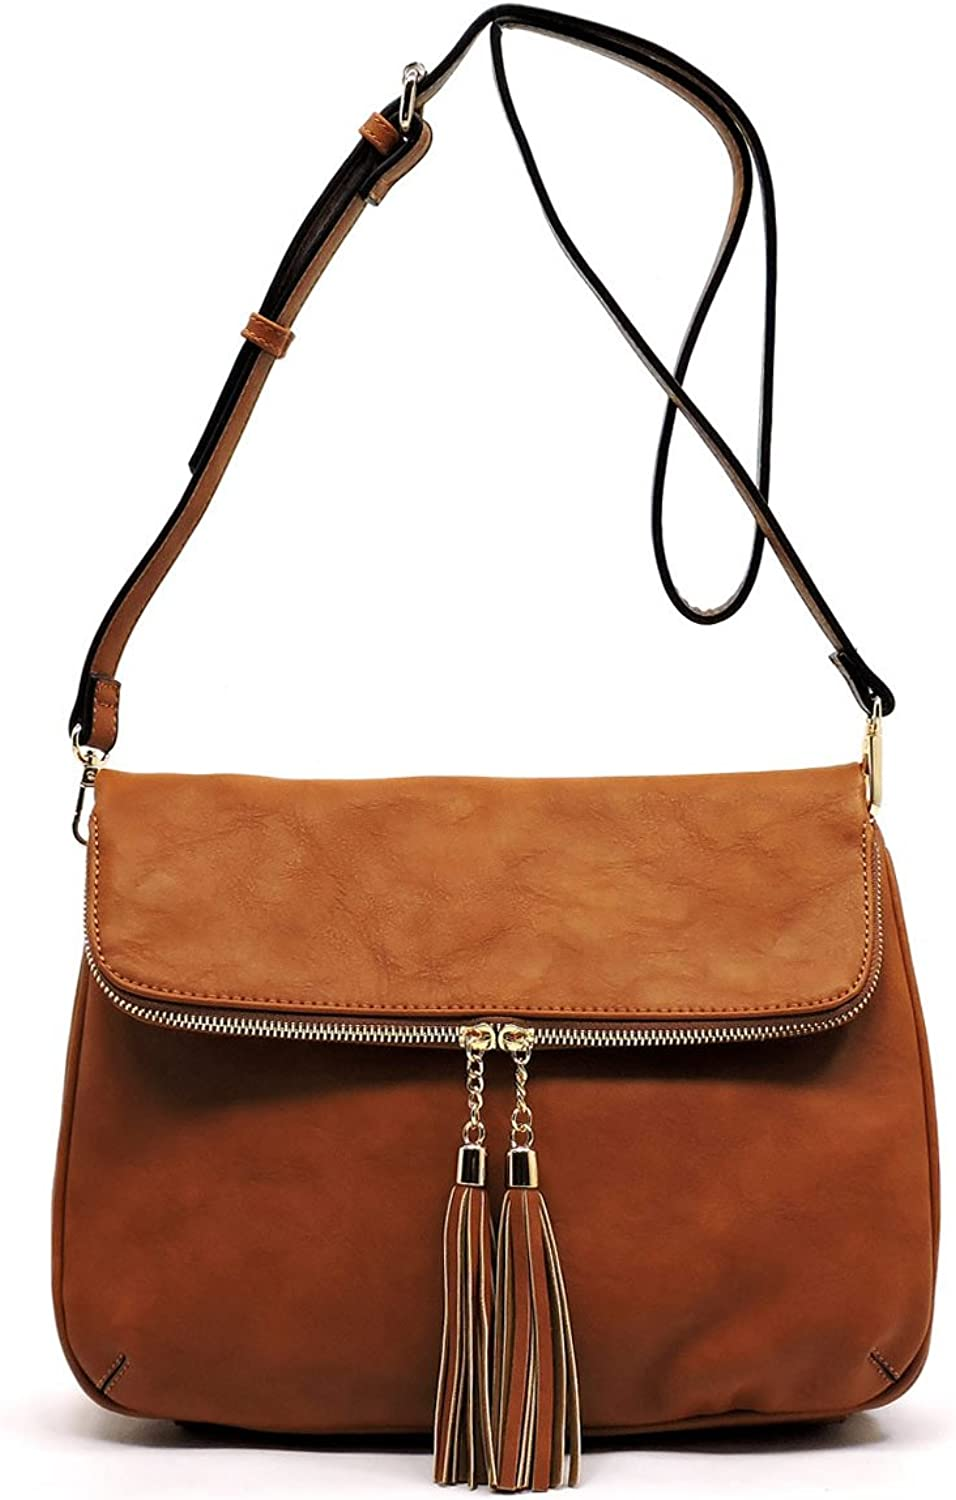 Emperia Outfitters Daisy Concealed Carry Lock and Key Handbag